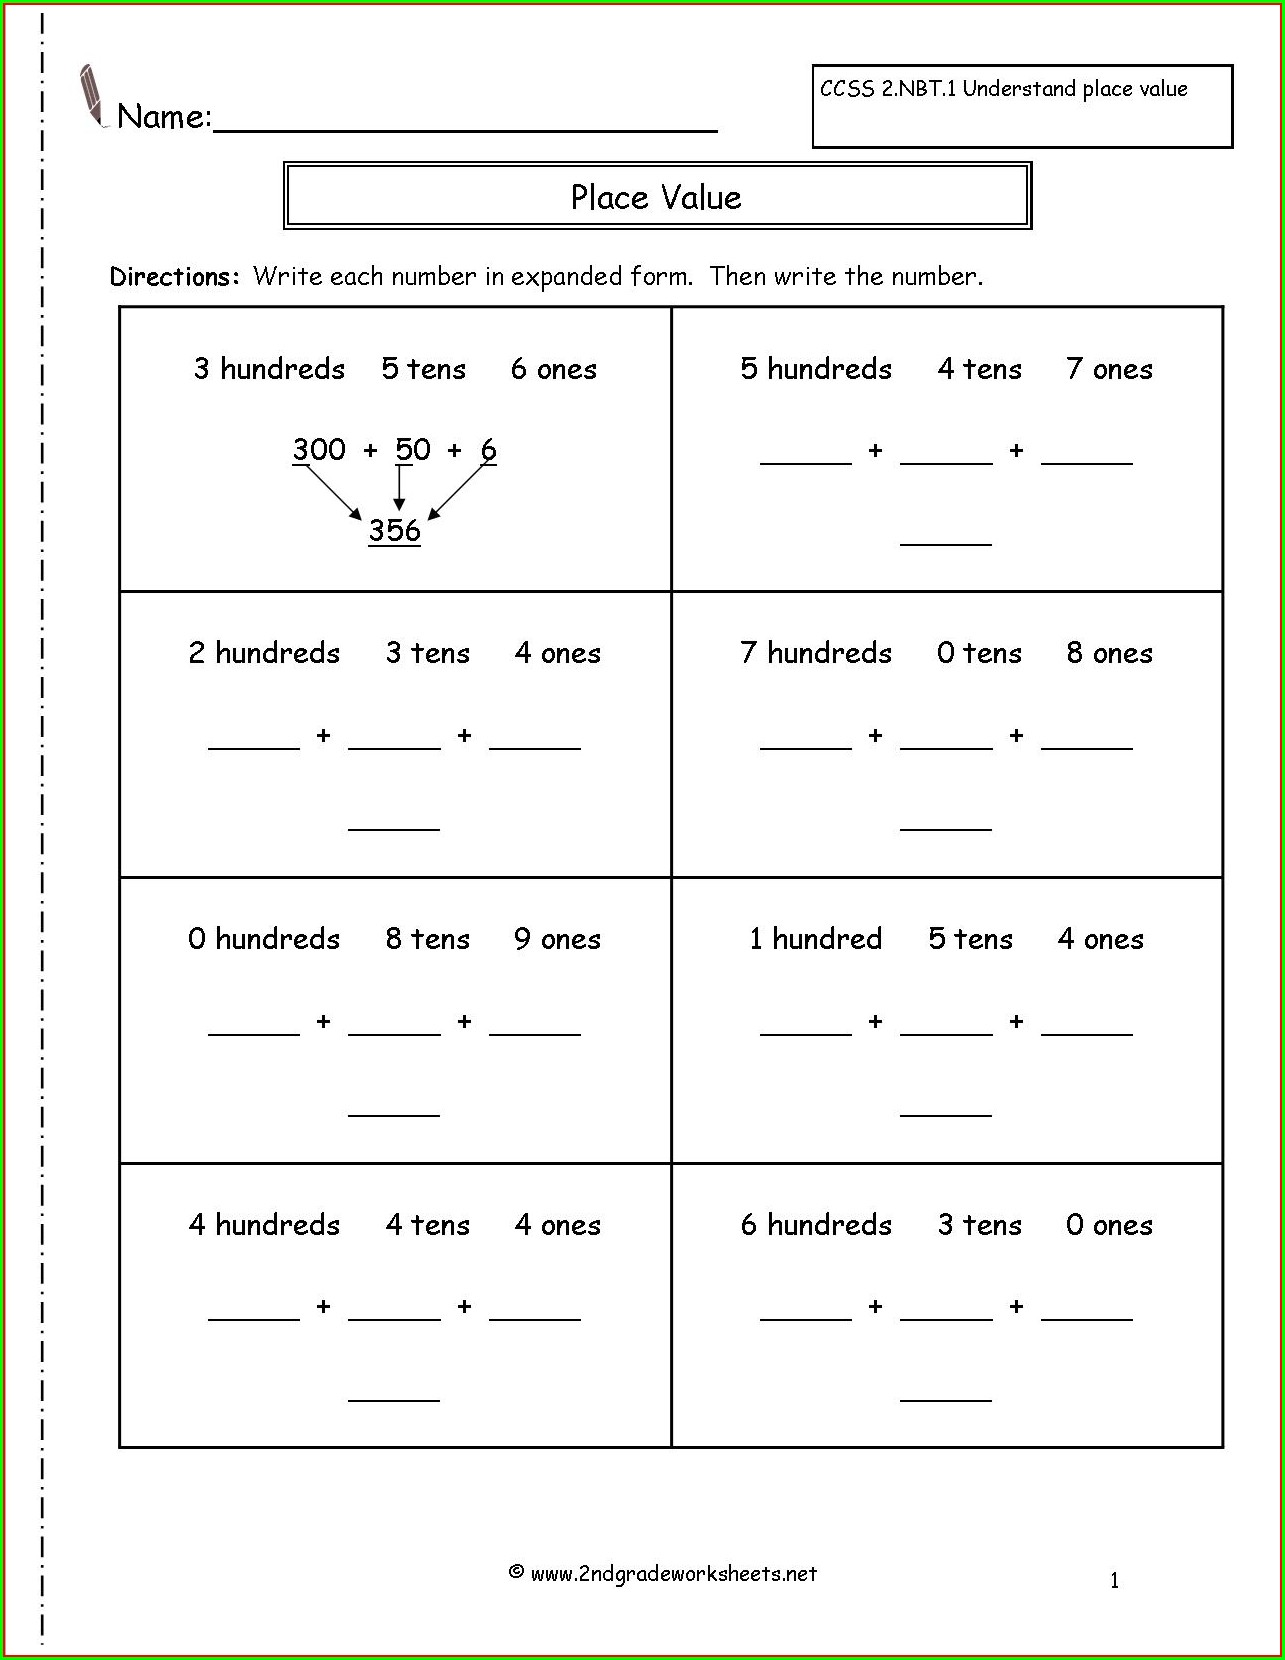 3rd Grade 2nd Grade Handwriting Worksheets